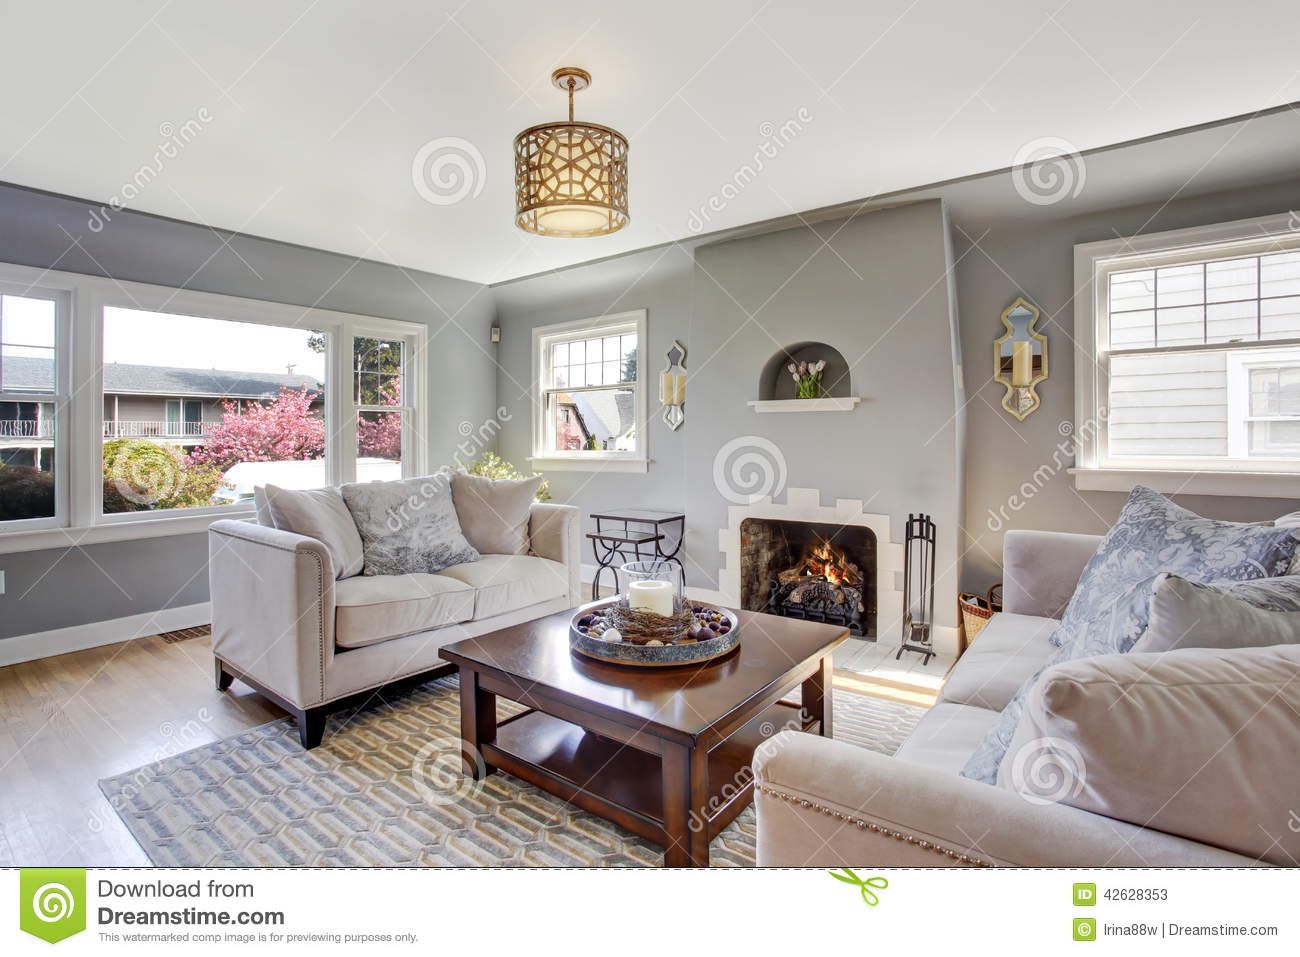 Light Grey Living Room With White Sofas And Fireplace Stock Image Image Of Lifestyle Sofa